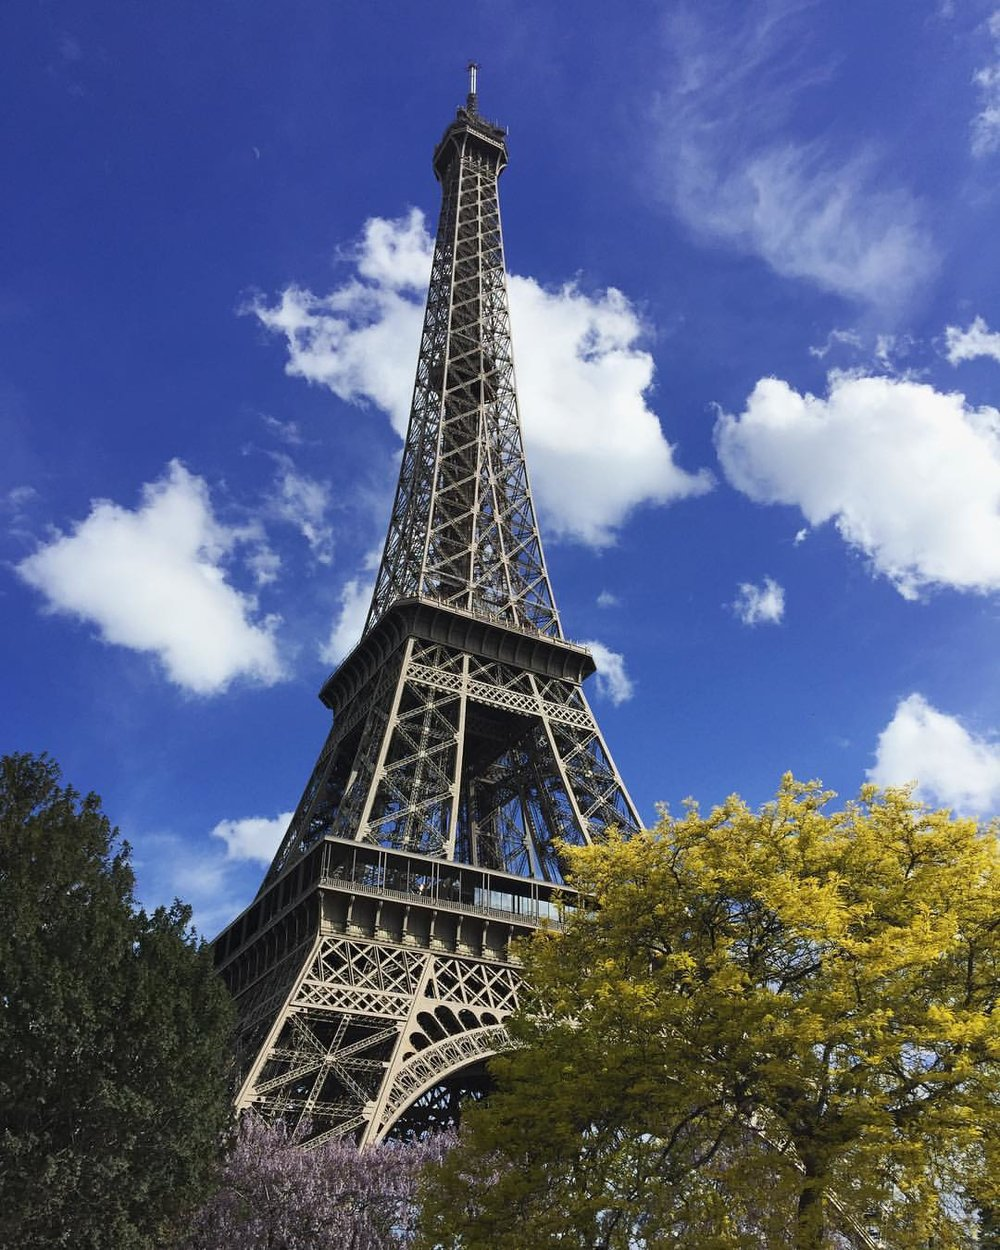 Eiffel tower in springtime with blooming trees and flowers in foreground and blue sky with white clouds behind.